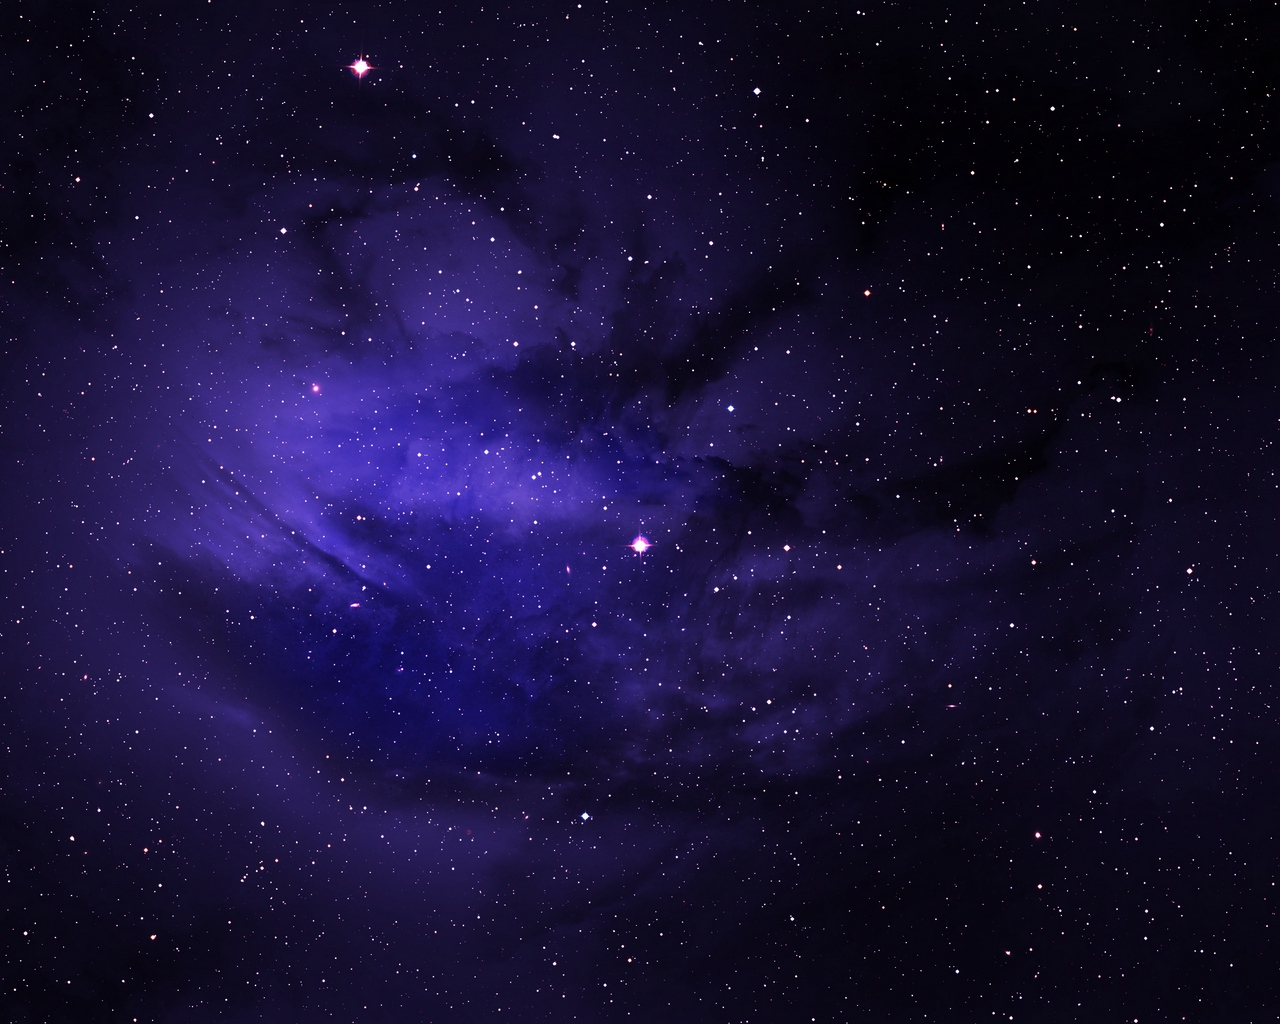 Wallpaper Stars Space Galaxy Galaxy Background 2899190 Hd Wallpaper Backgrounds Download